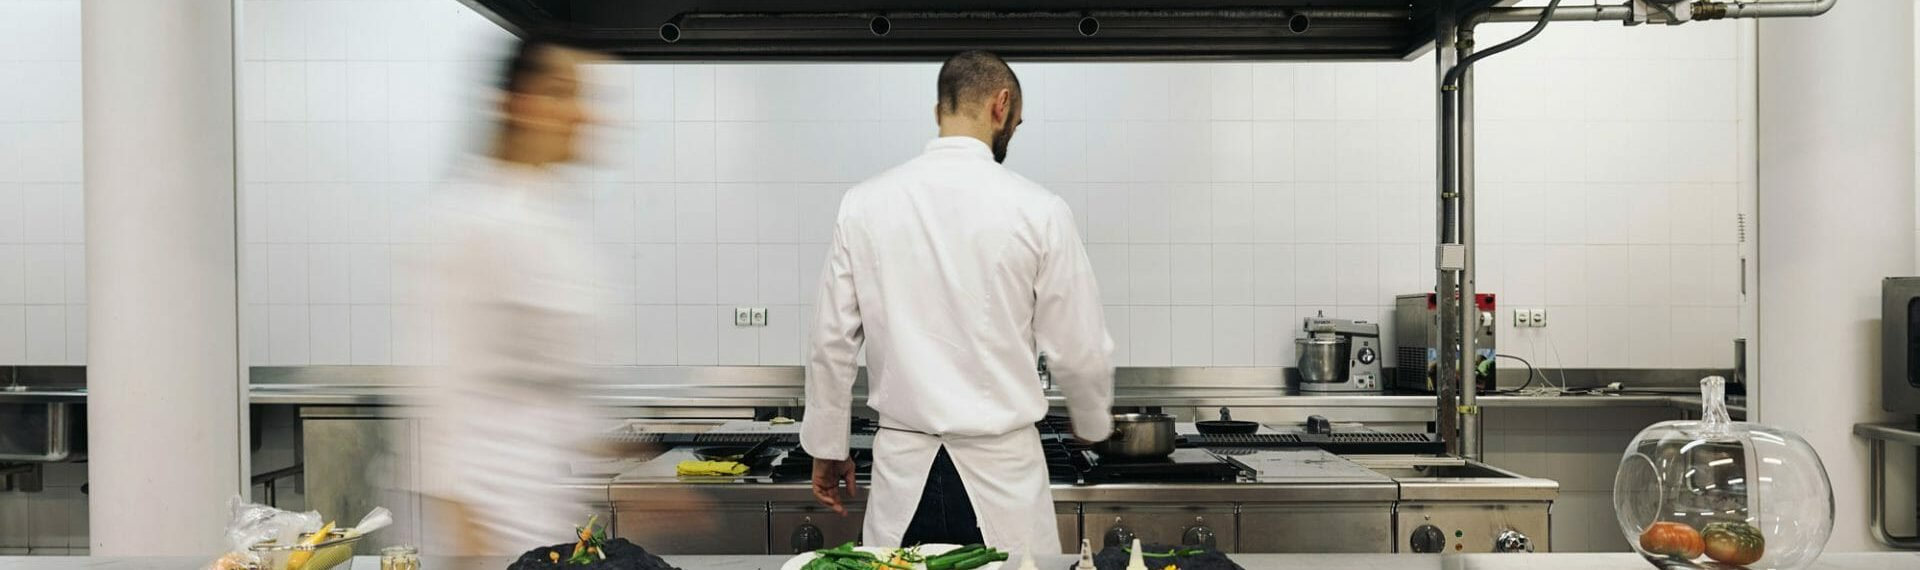 chef in whites working in a kitchen